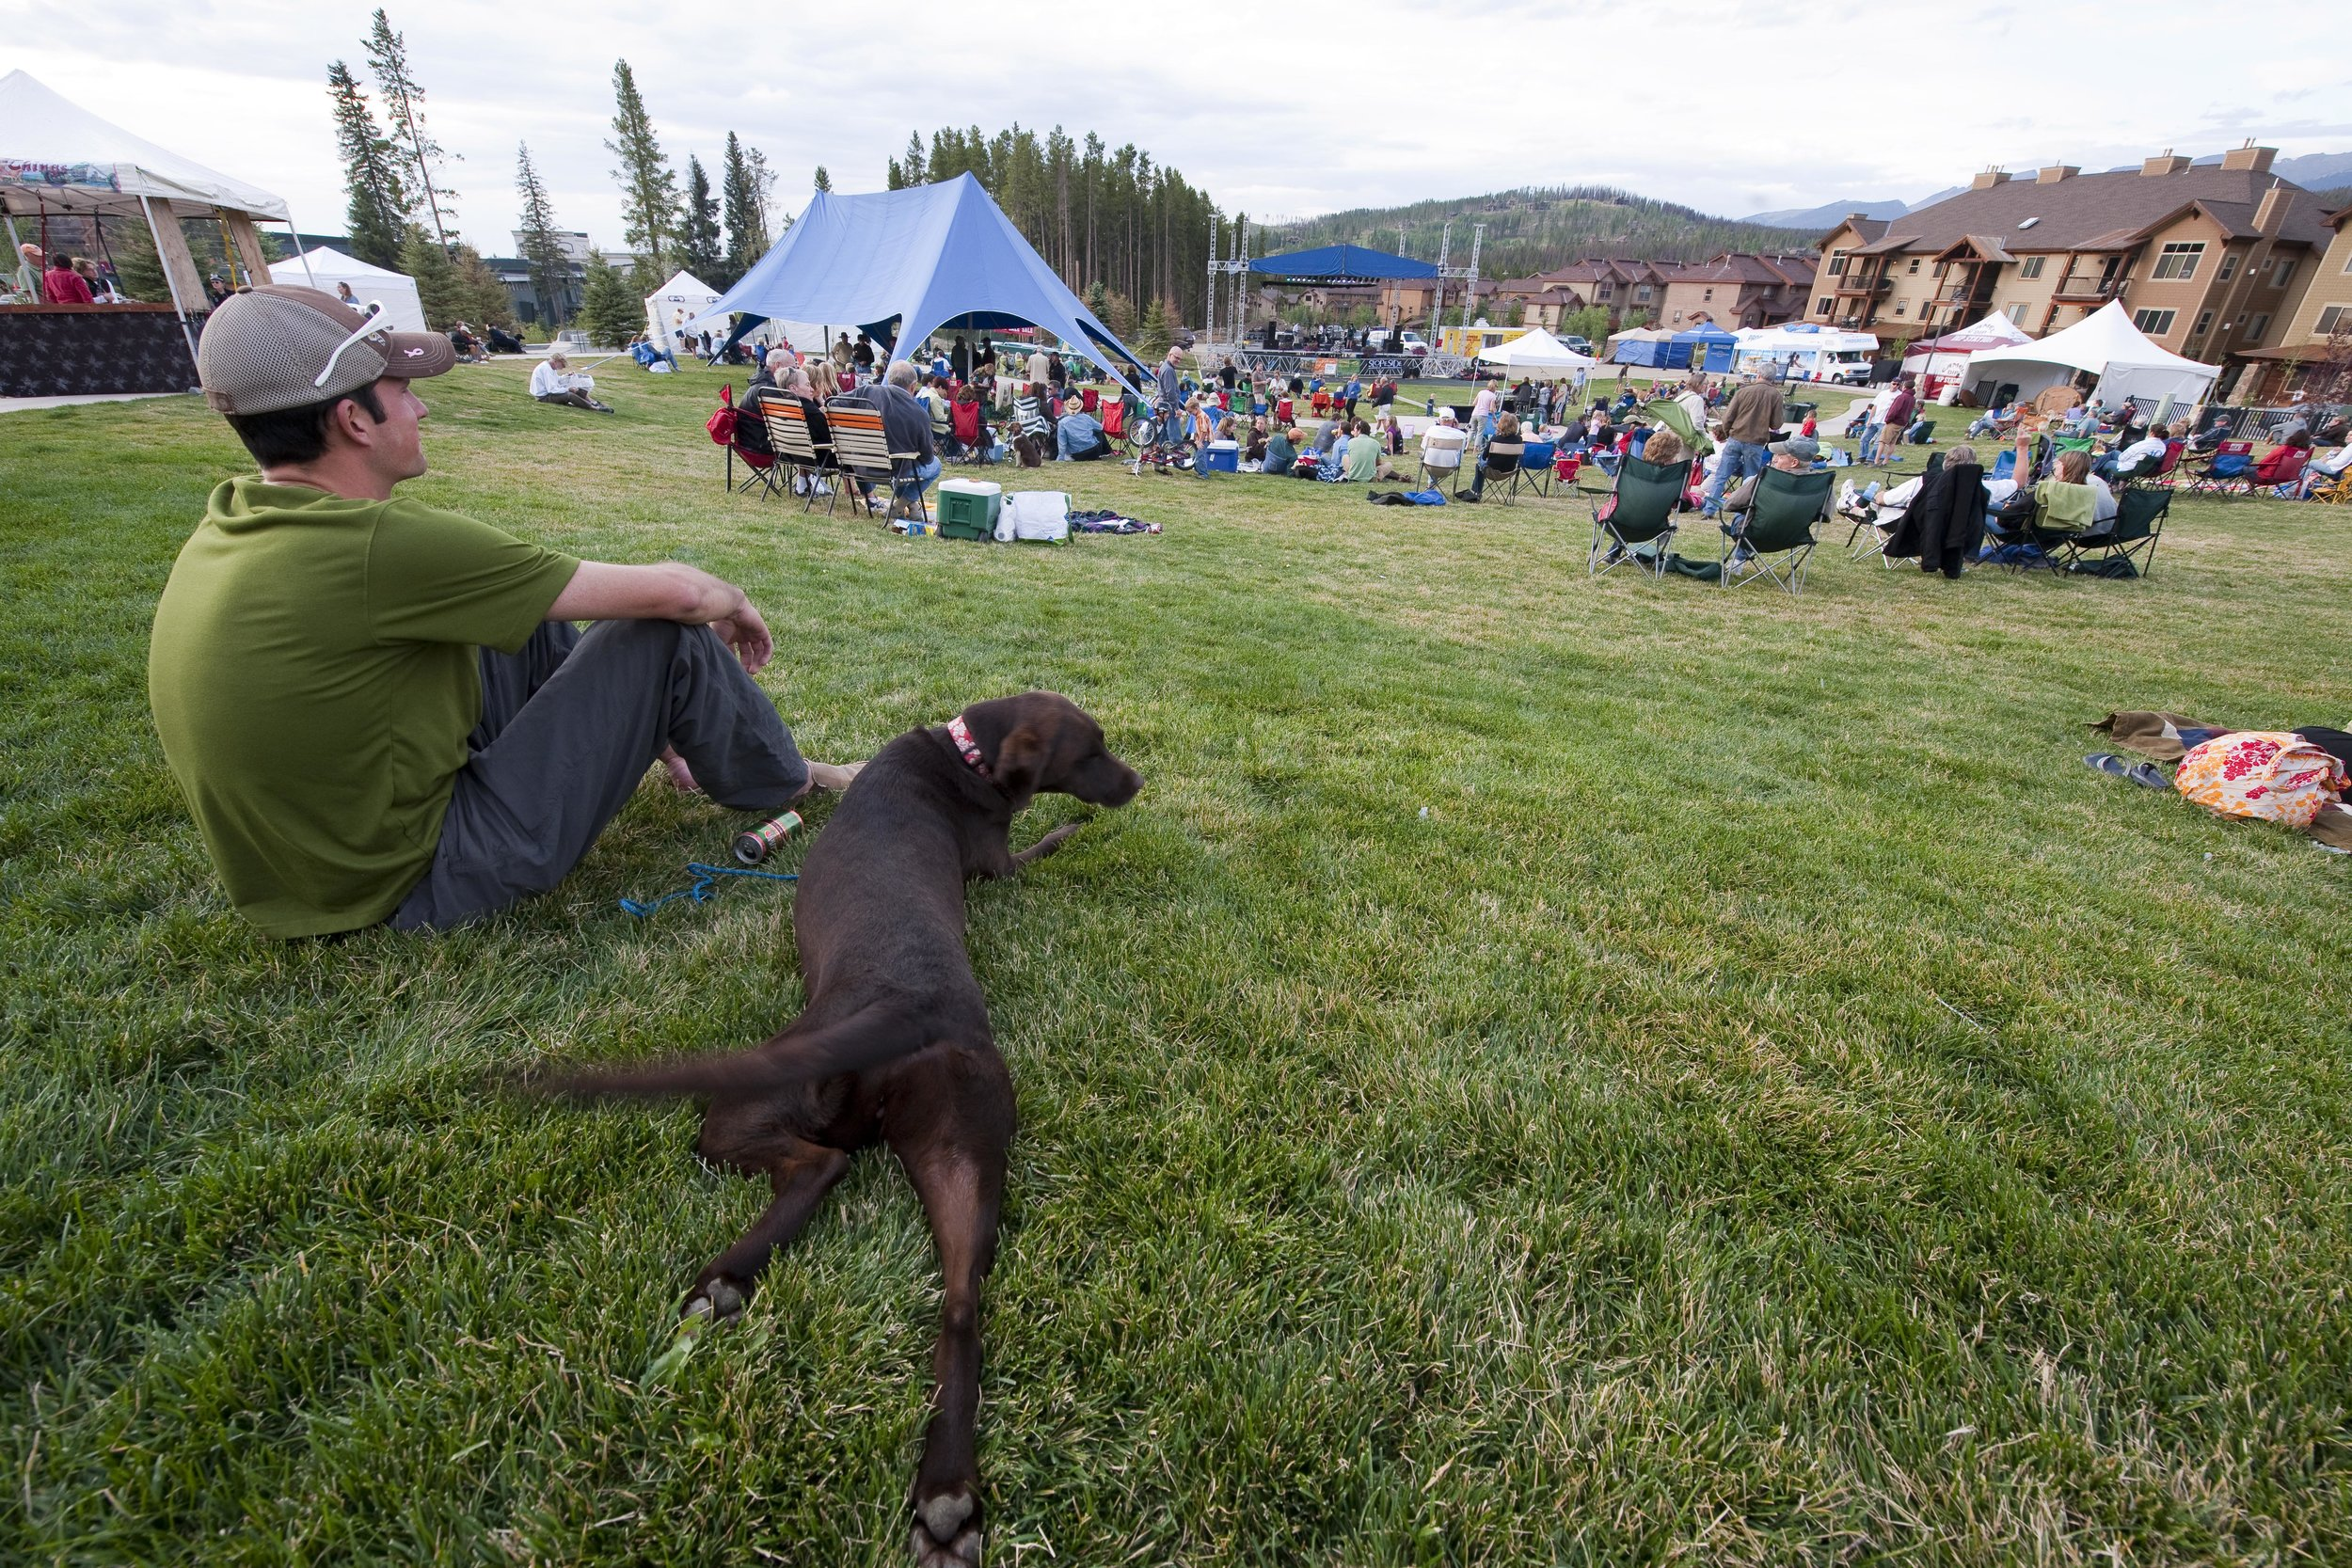 Guy with dog sitting on grass lawn amphitheater seating watching a concert festival stage in winter park colorado